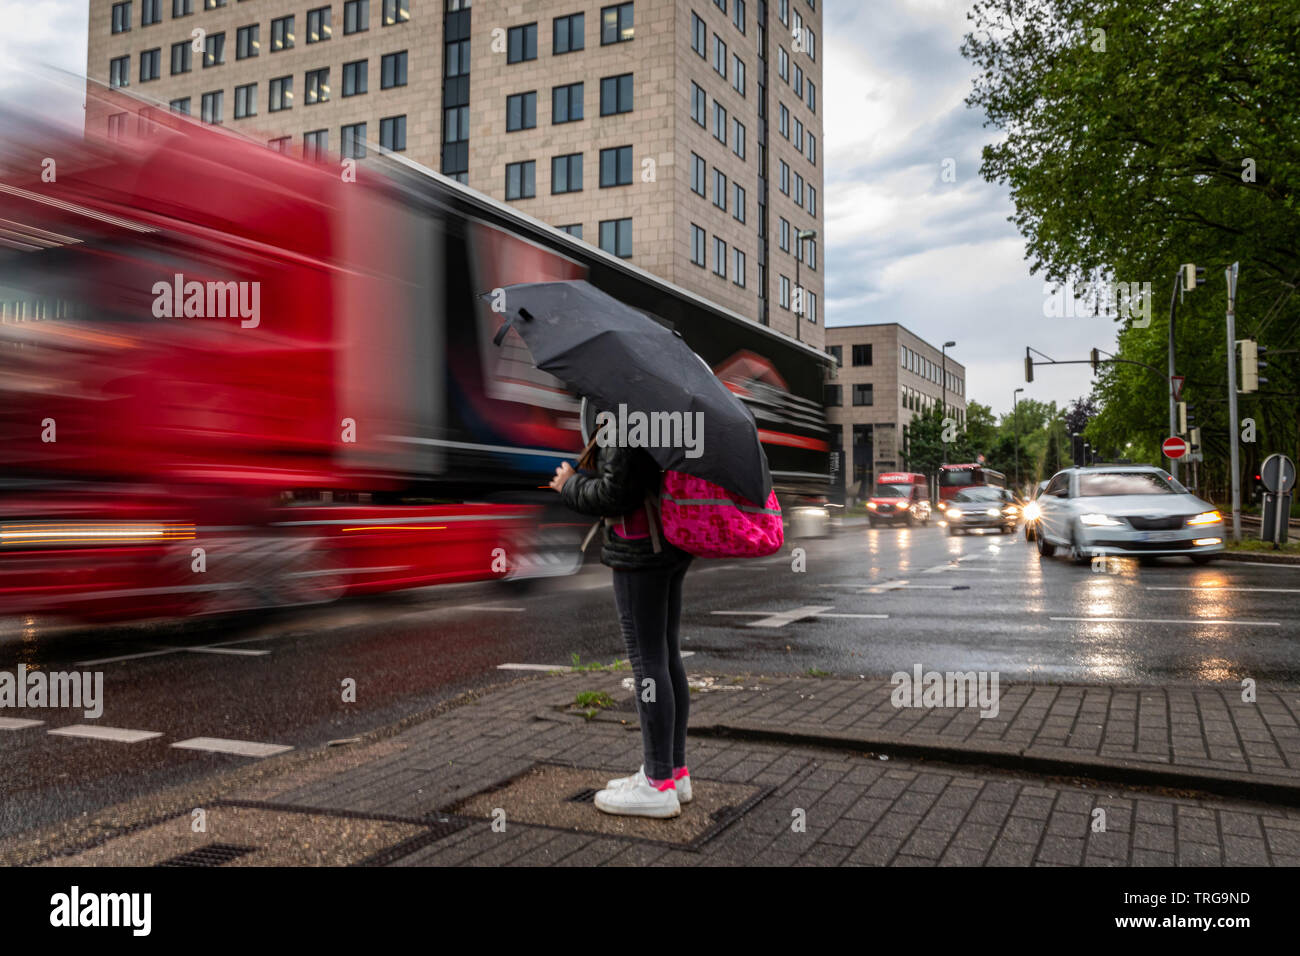 Views of the flowing traffic at the intersection Vosskuhle on the Bundesstrasse 1 in Dortmund © Frank Schultze / Zeitenspiegel - Stock Image